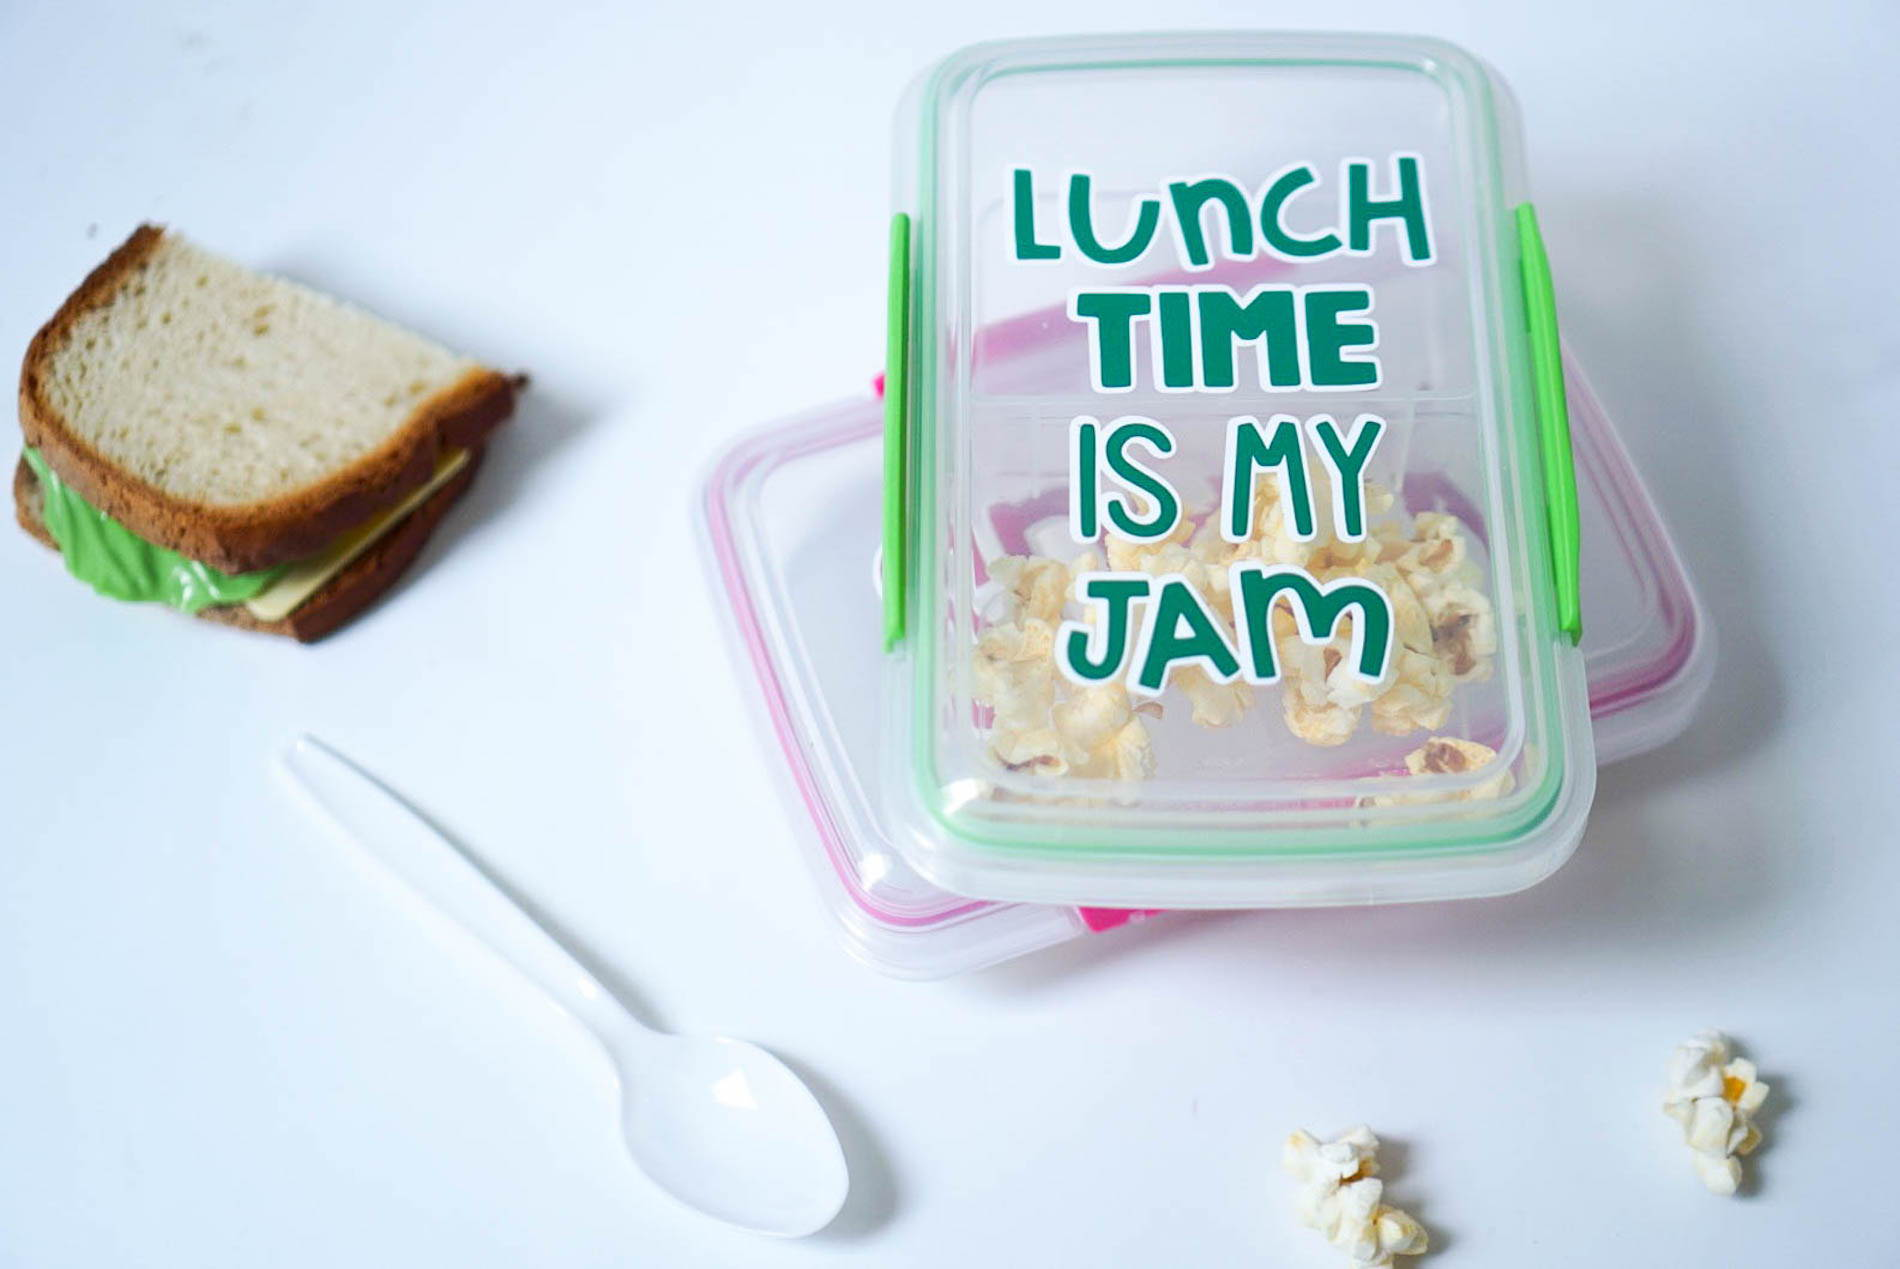 DIY lunch containers with Craftables adhesive vinyl